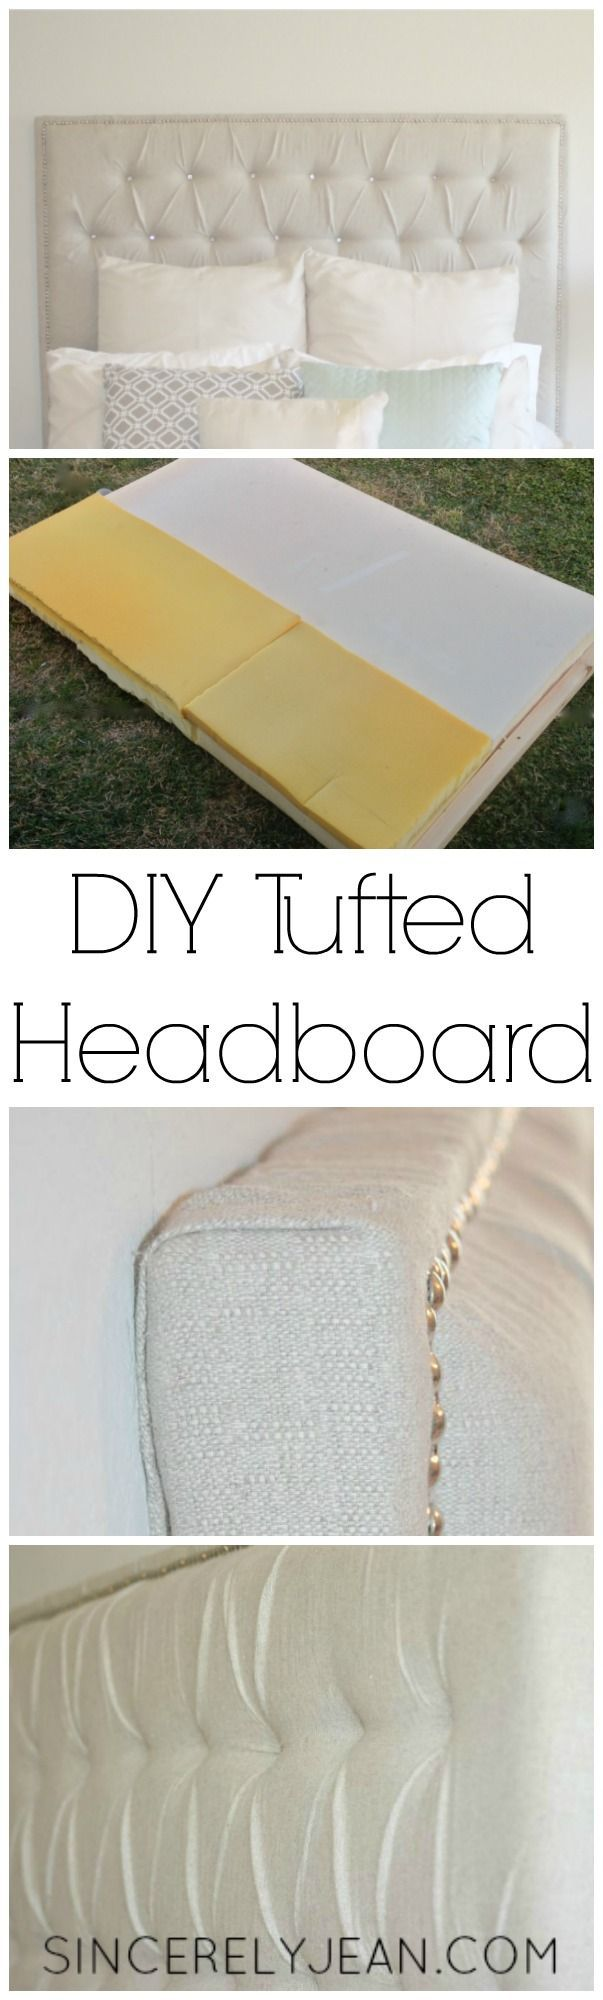 DIY Tufted Headboard | Ordenar casas